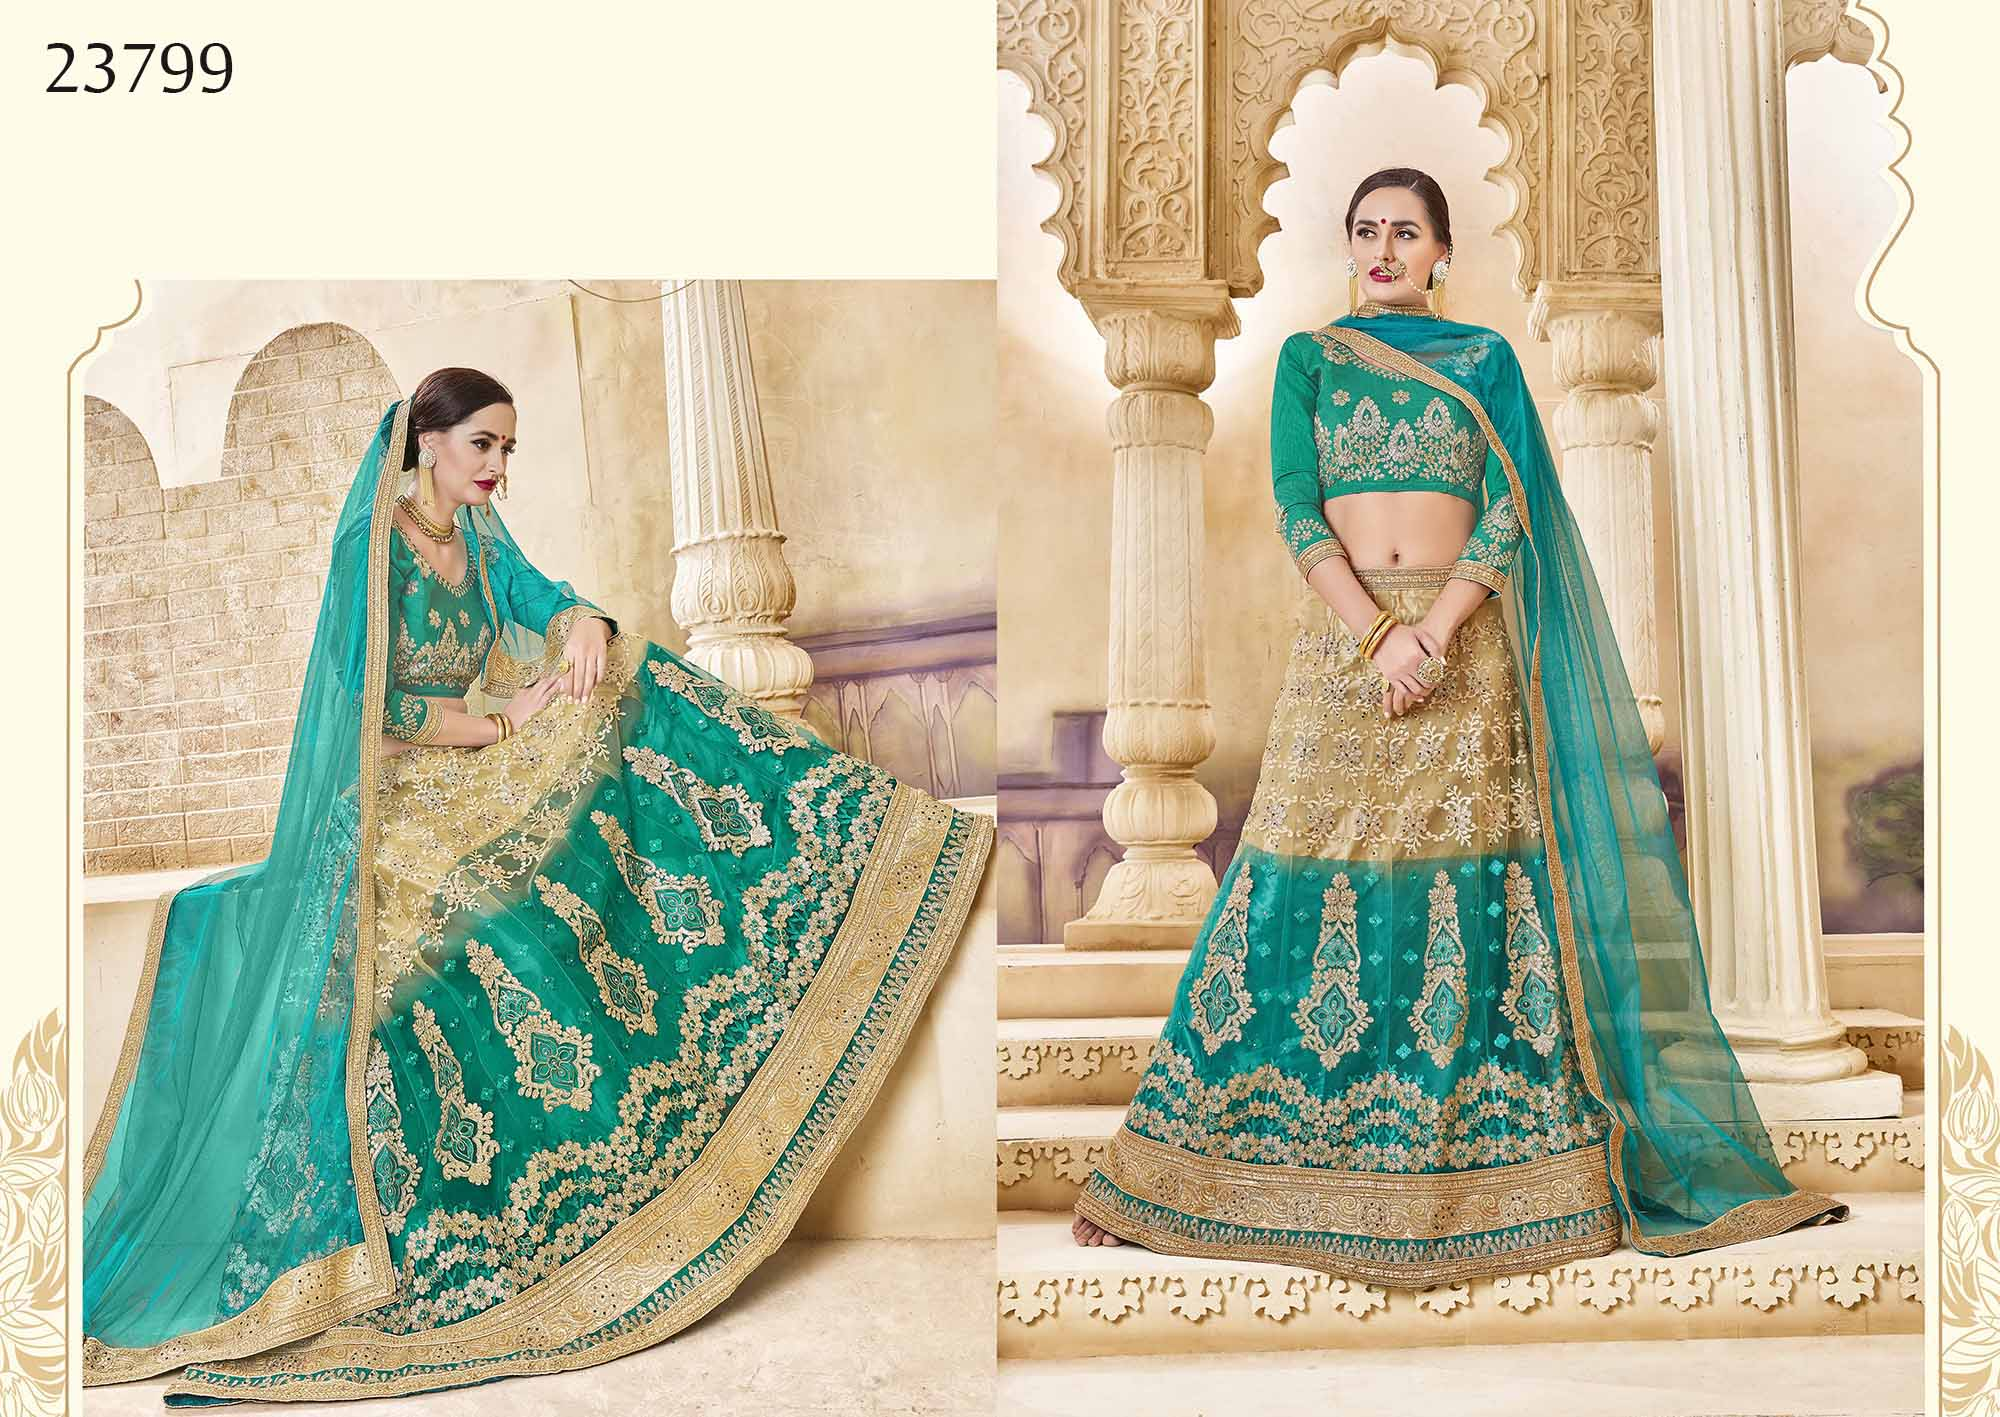 Royal bridal wear lehenga Irish 23799